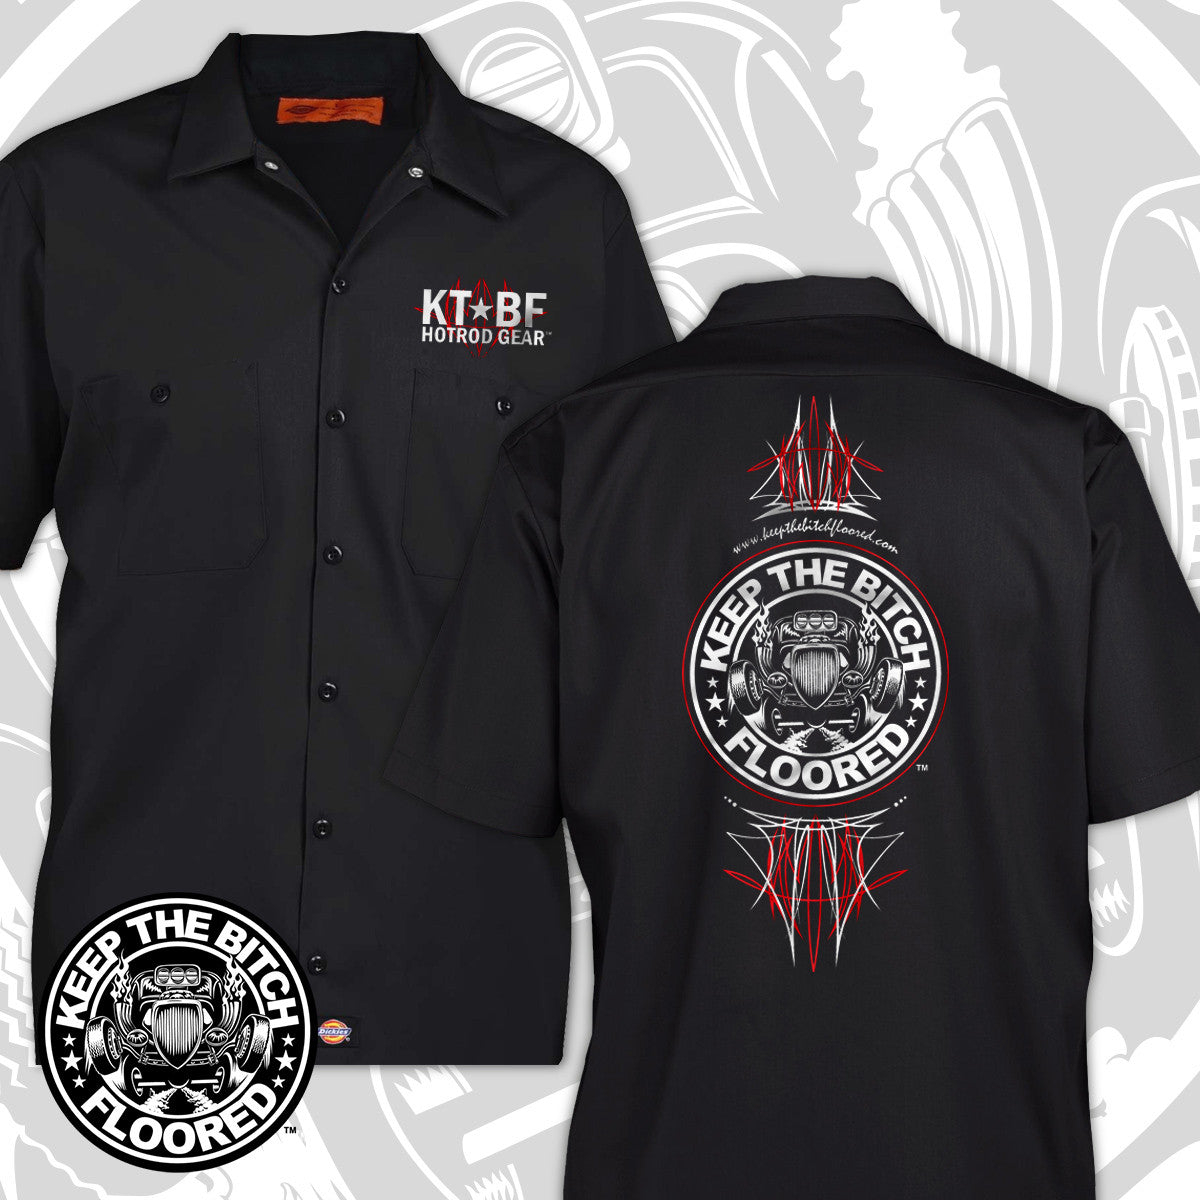 Keep The Bitch Floored Pinstripe Dickies Garage Work Shirt